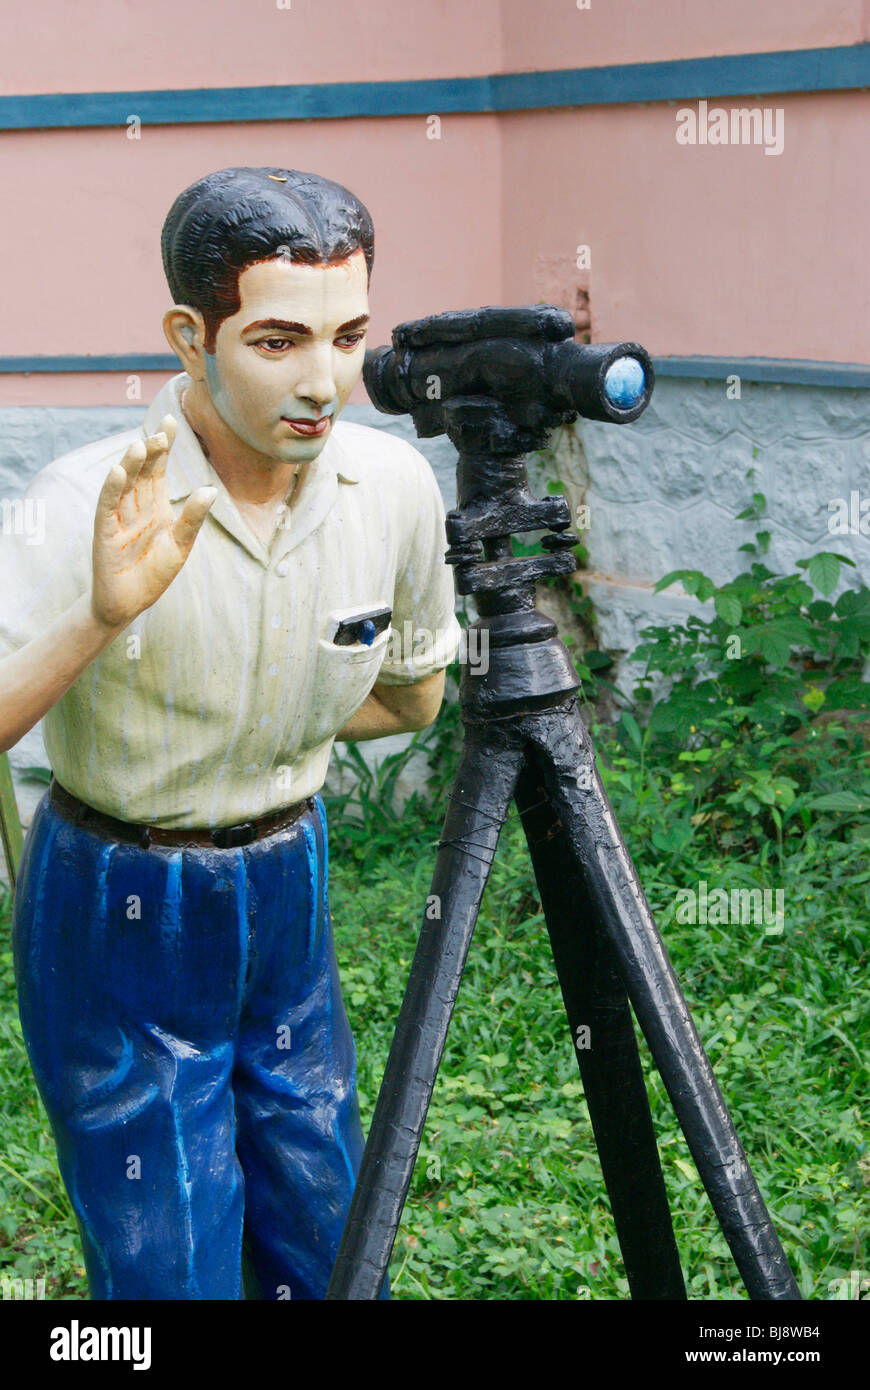 Surveying man sculpture in the beautiful Neyyar Dam garden of Kerala,India.Surveyor Man Statue with Tripod and survey - Stock Image